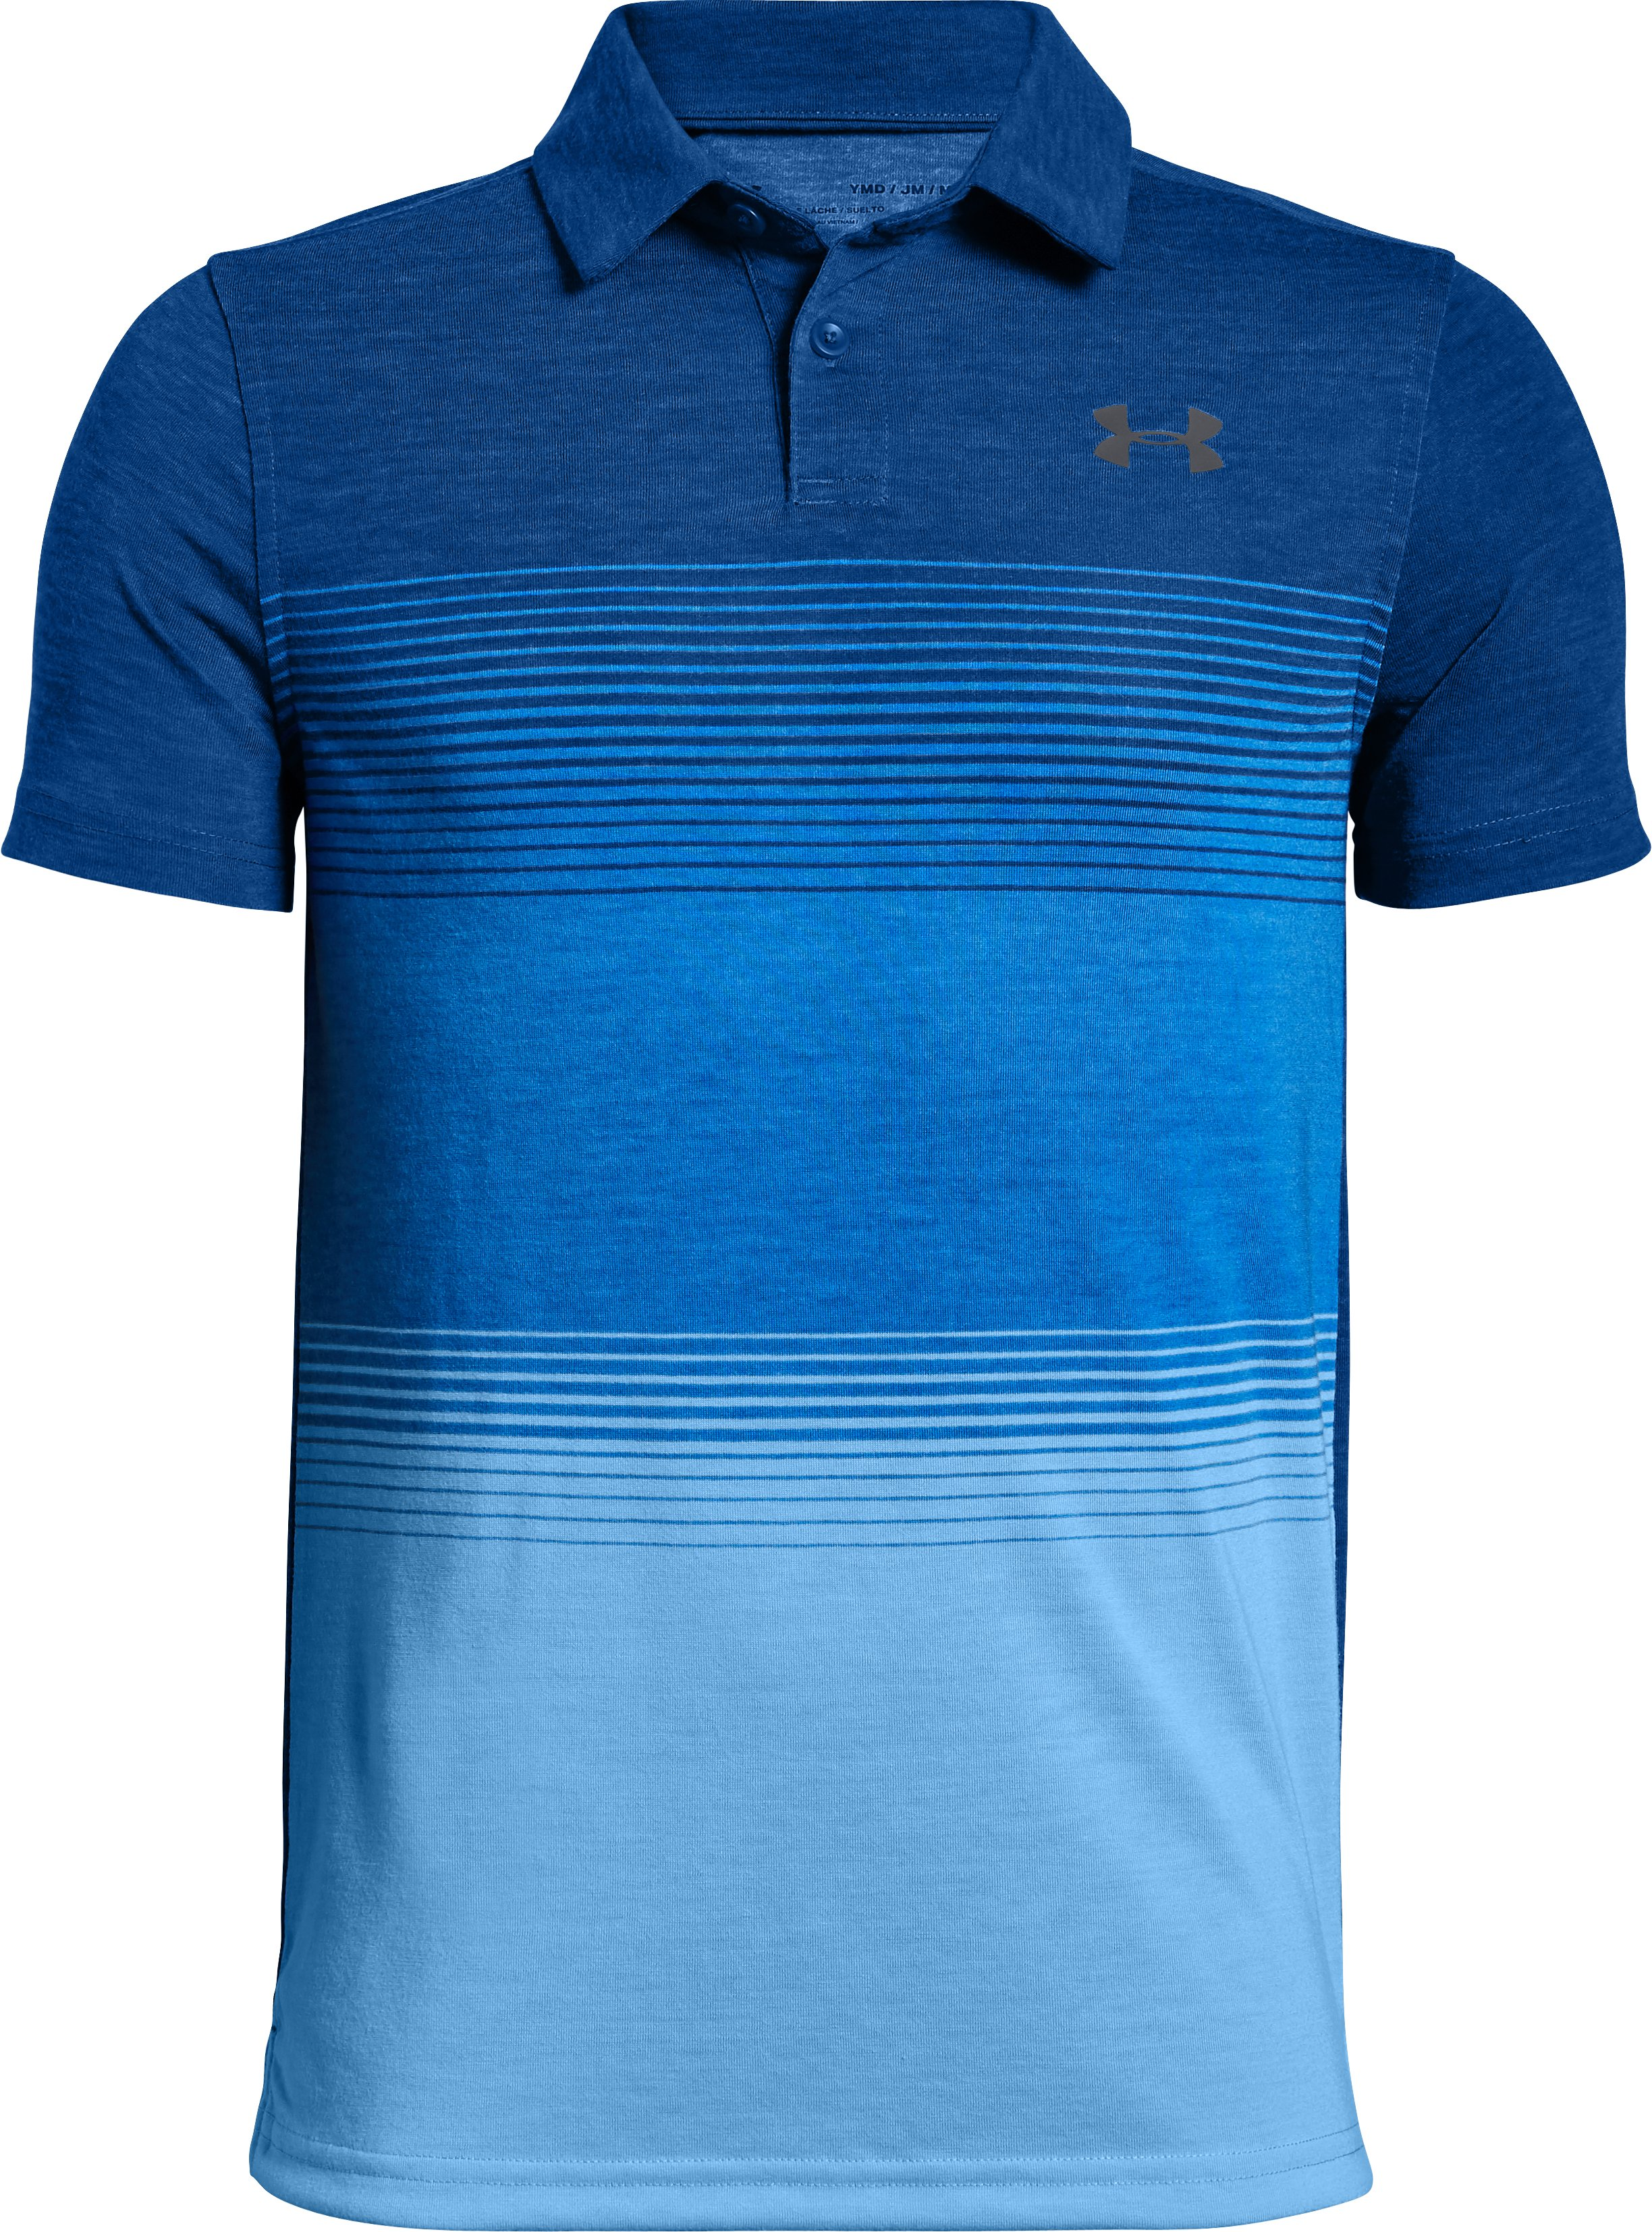 Boys' UA Jordan Spieth Threadborne Gradient Polo, Royal,